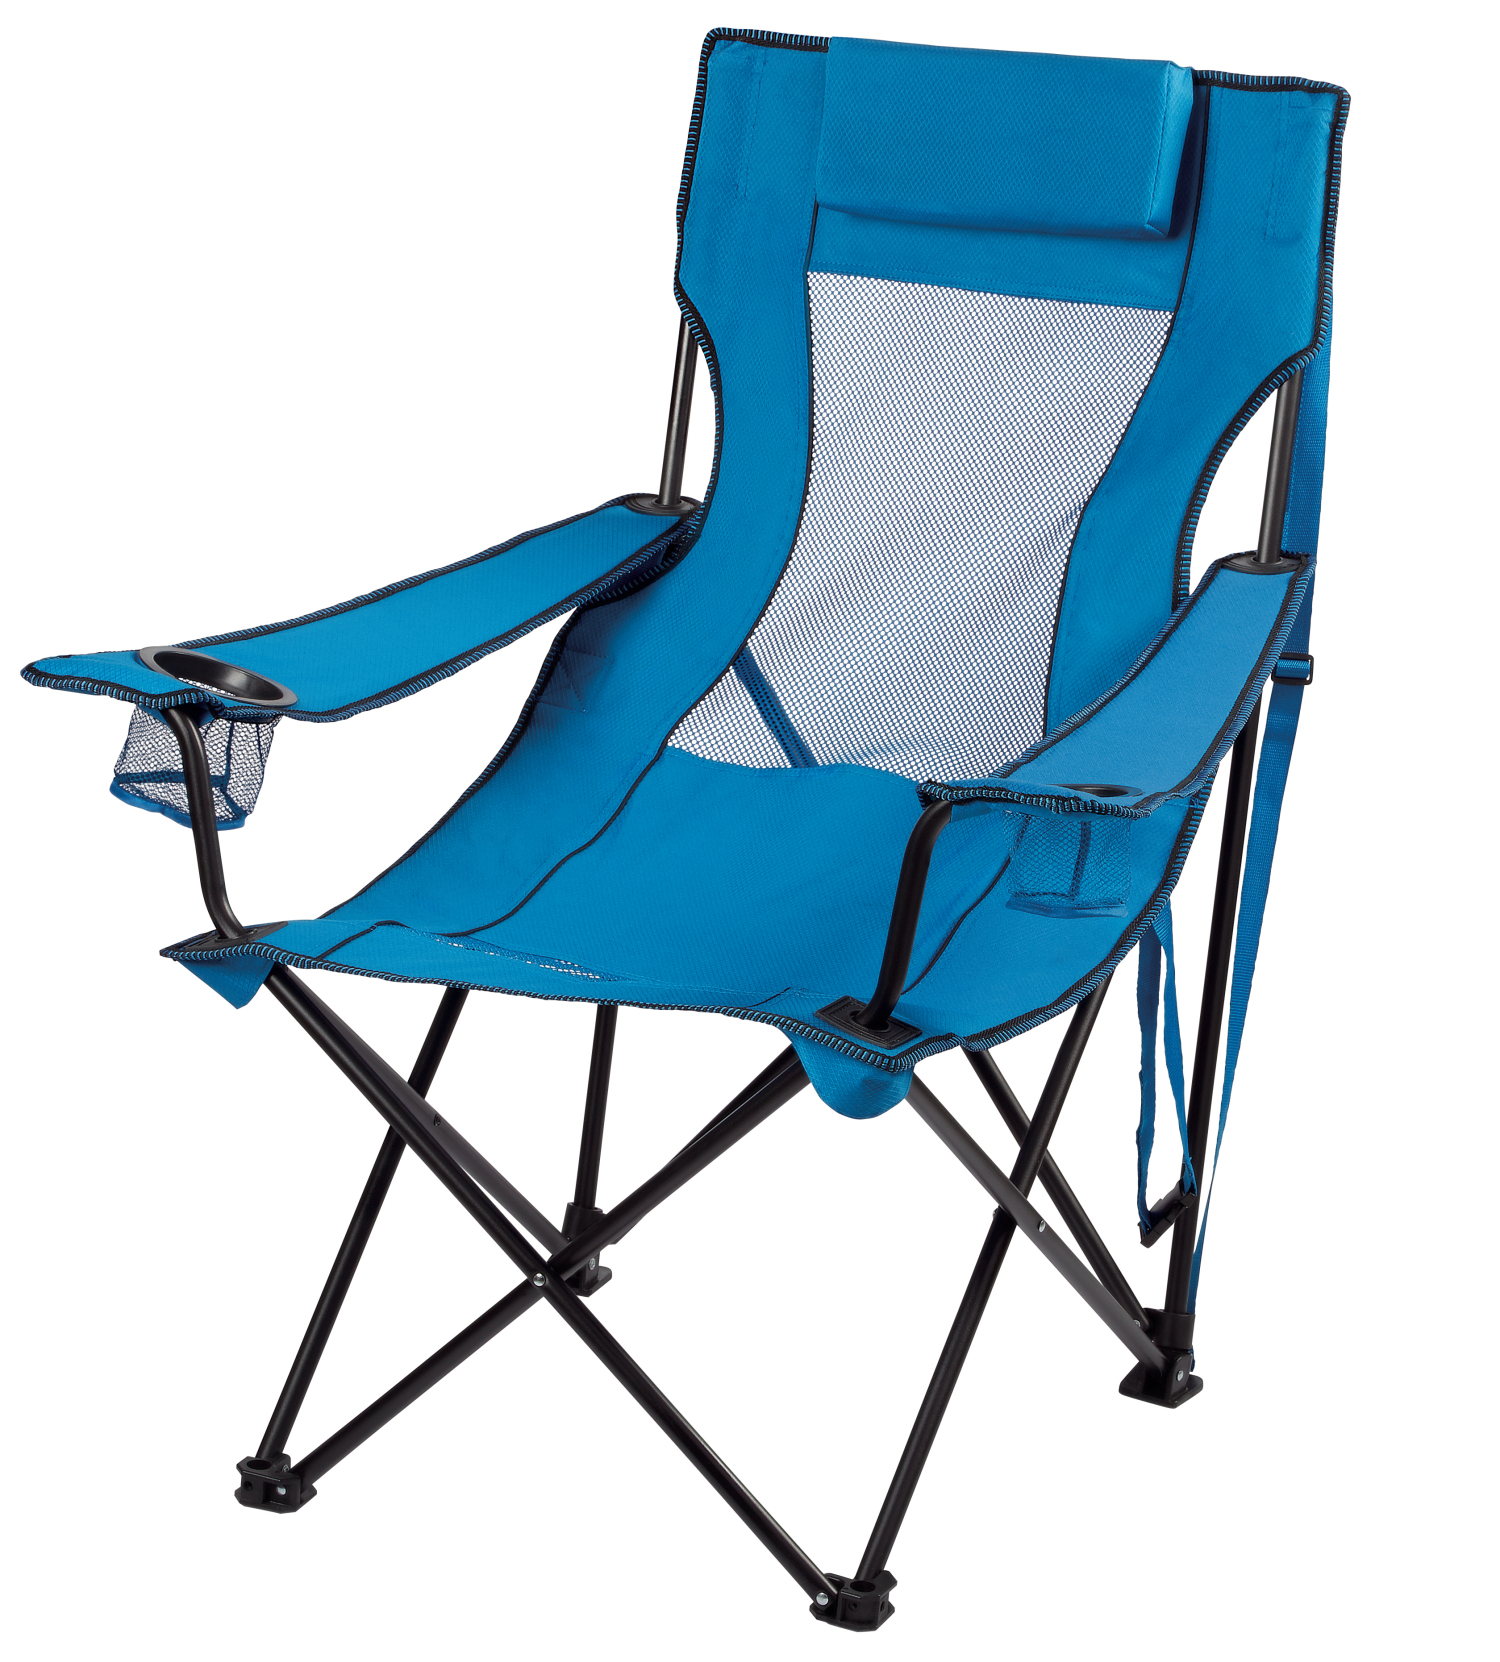 Ozark Trail Folding Lounge Chair with 2 Cup Holders, Blue by Sunshine